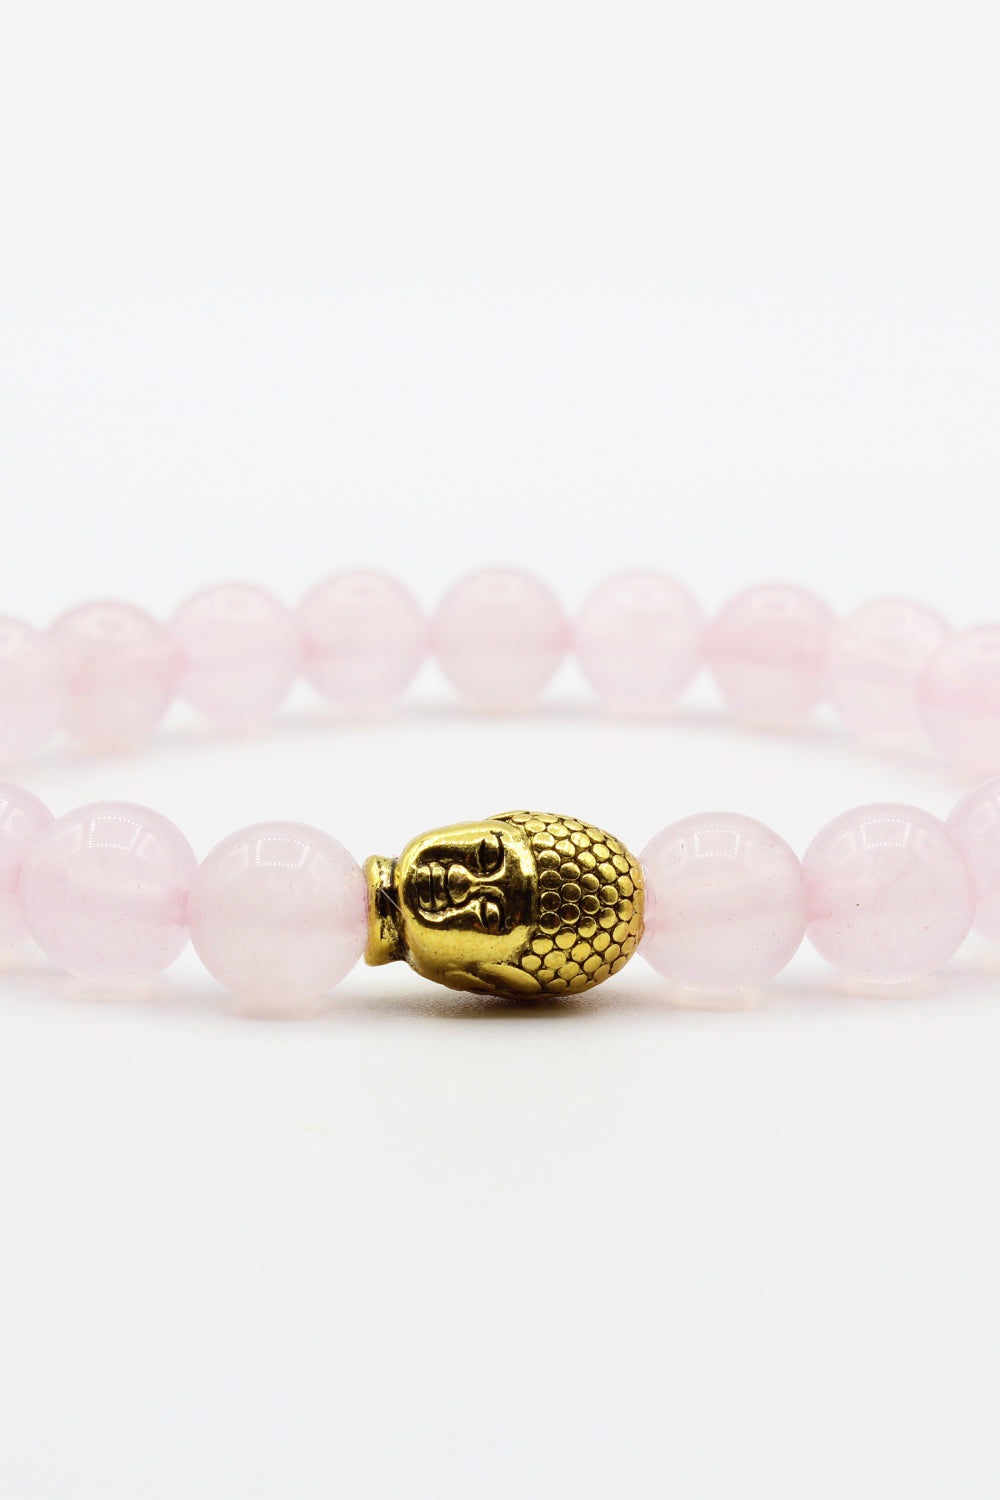 INFINITE LOVE Rose Quartz Mala Bracelet